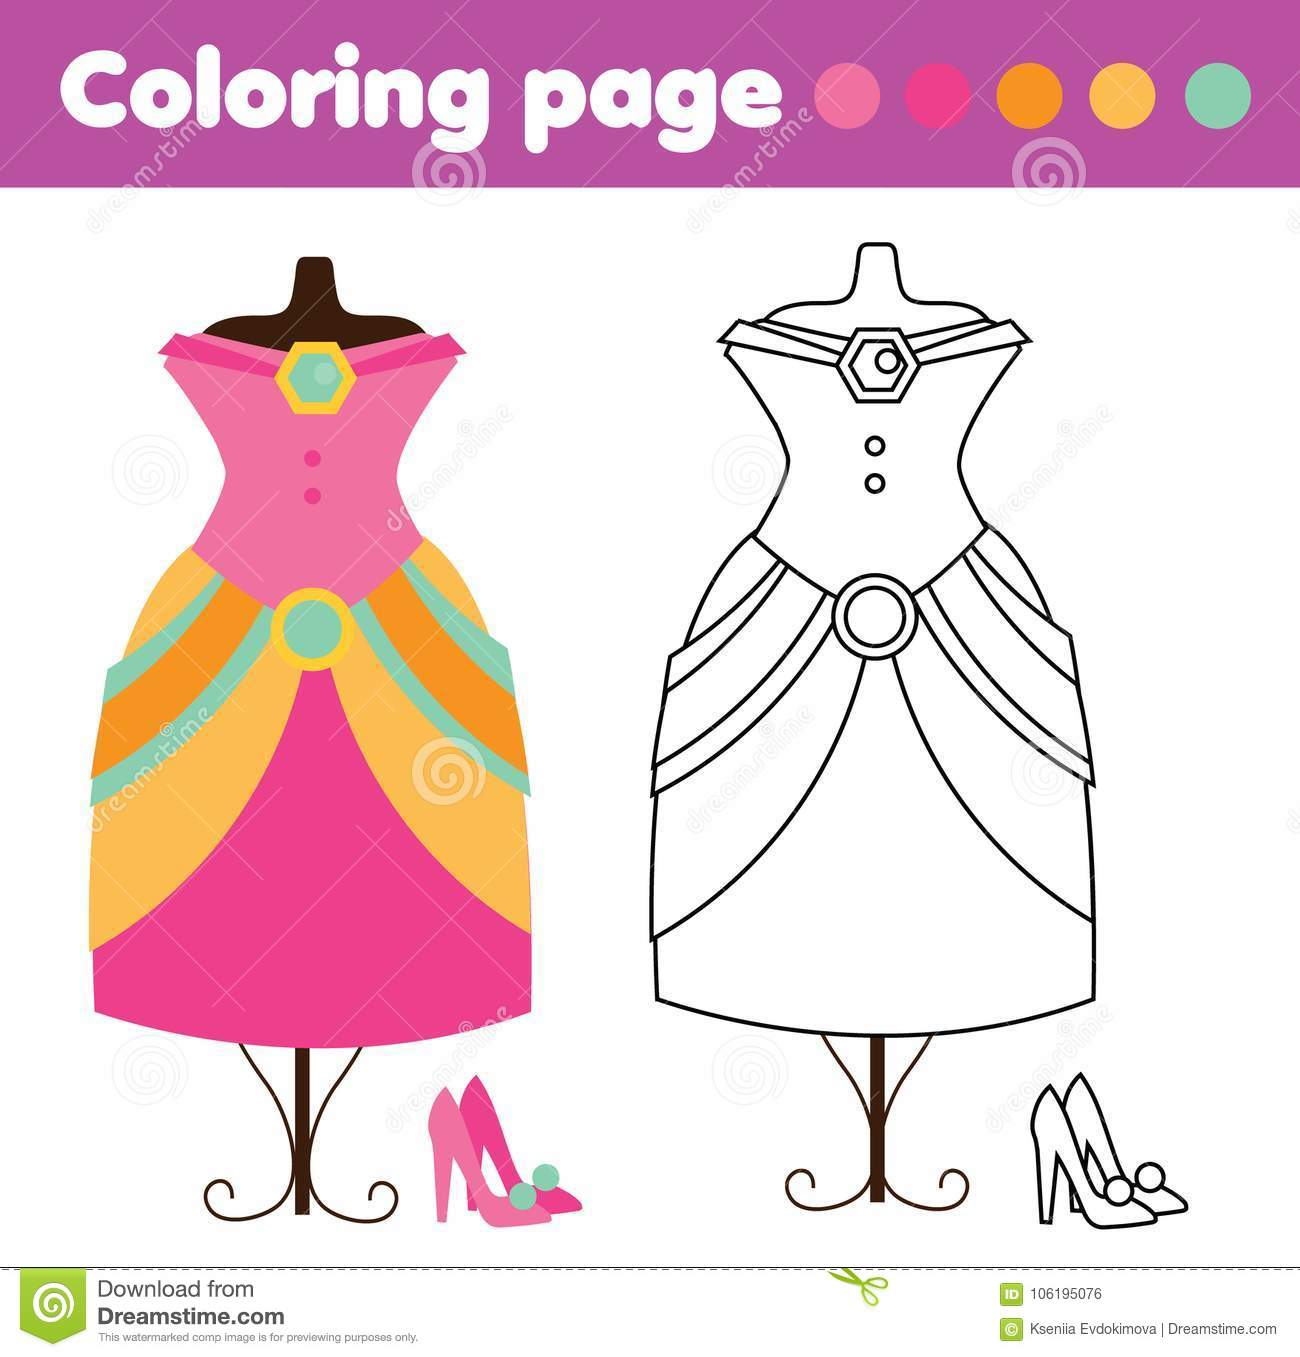 Coloring Page With Fashion Dress And Shoes Drawing Kids Game Printable Activity Stock Vector Illustration Of Classes Homework 106195076